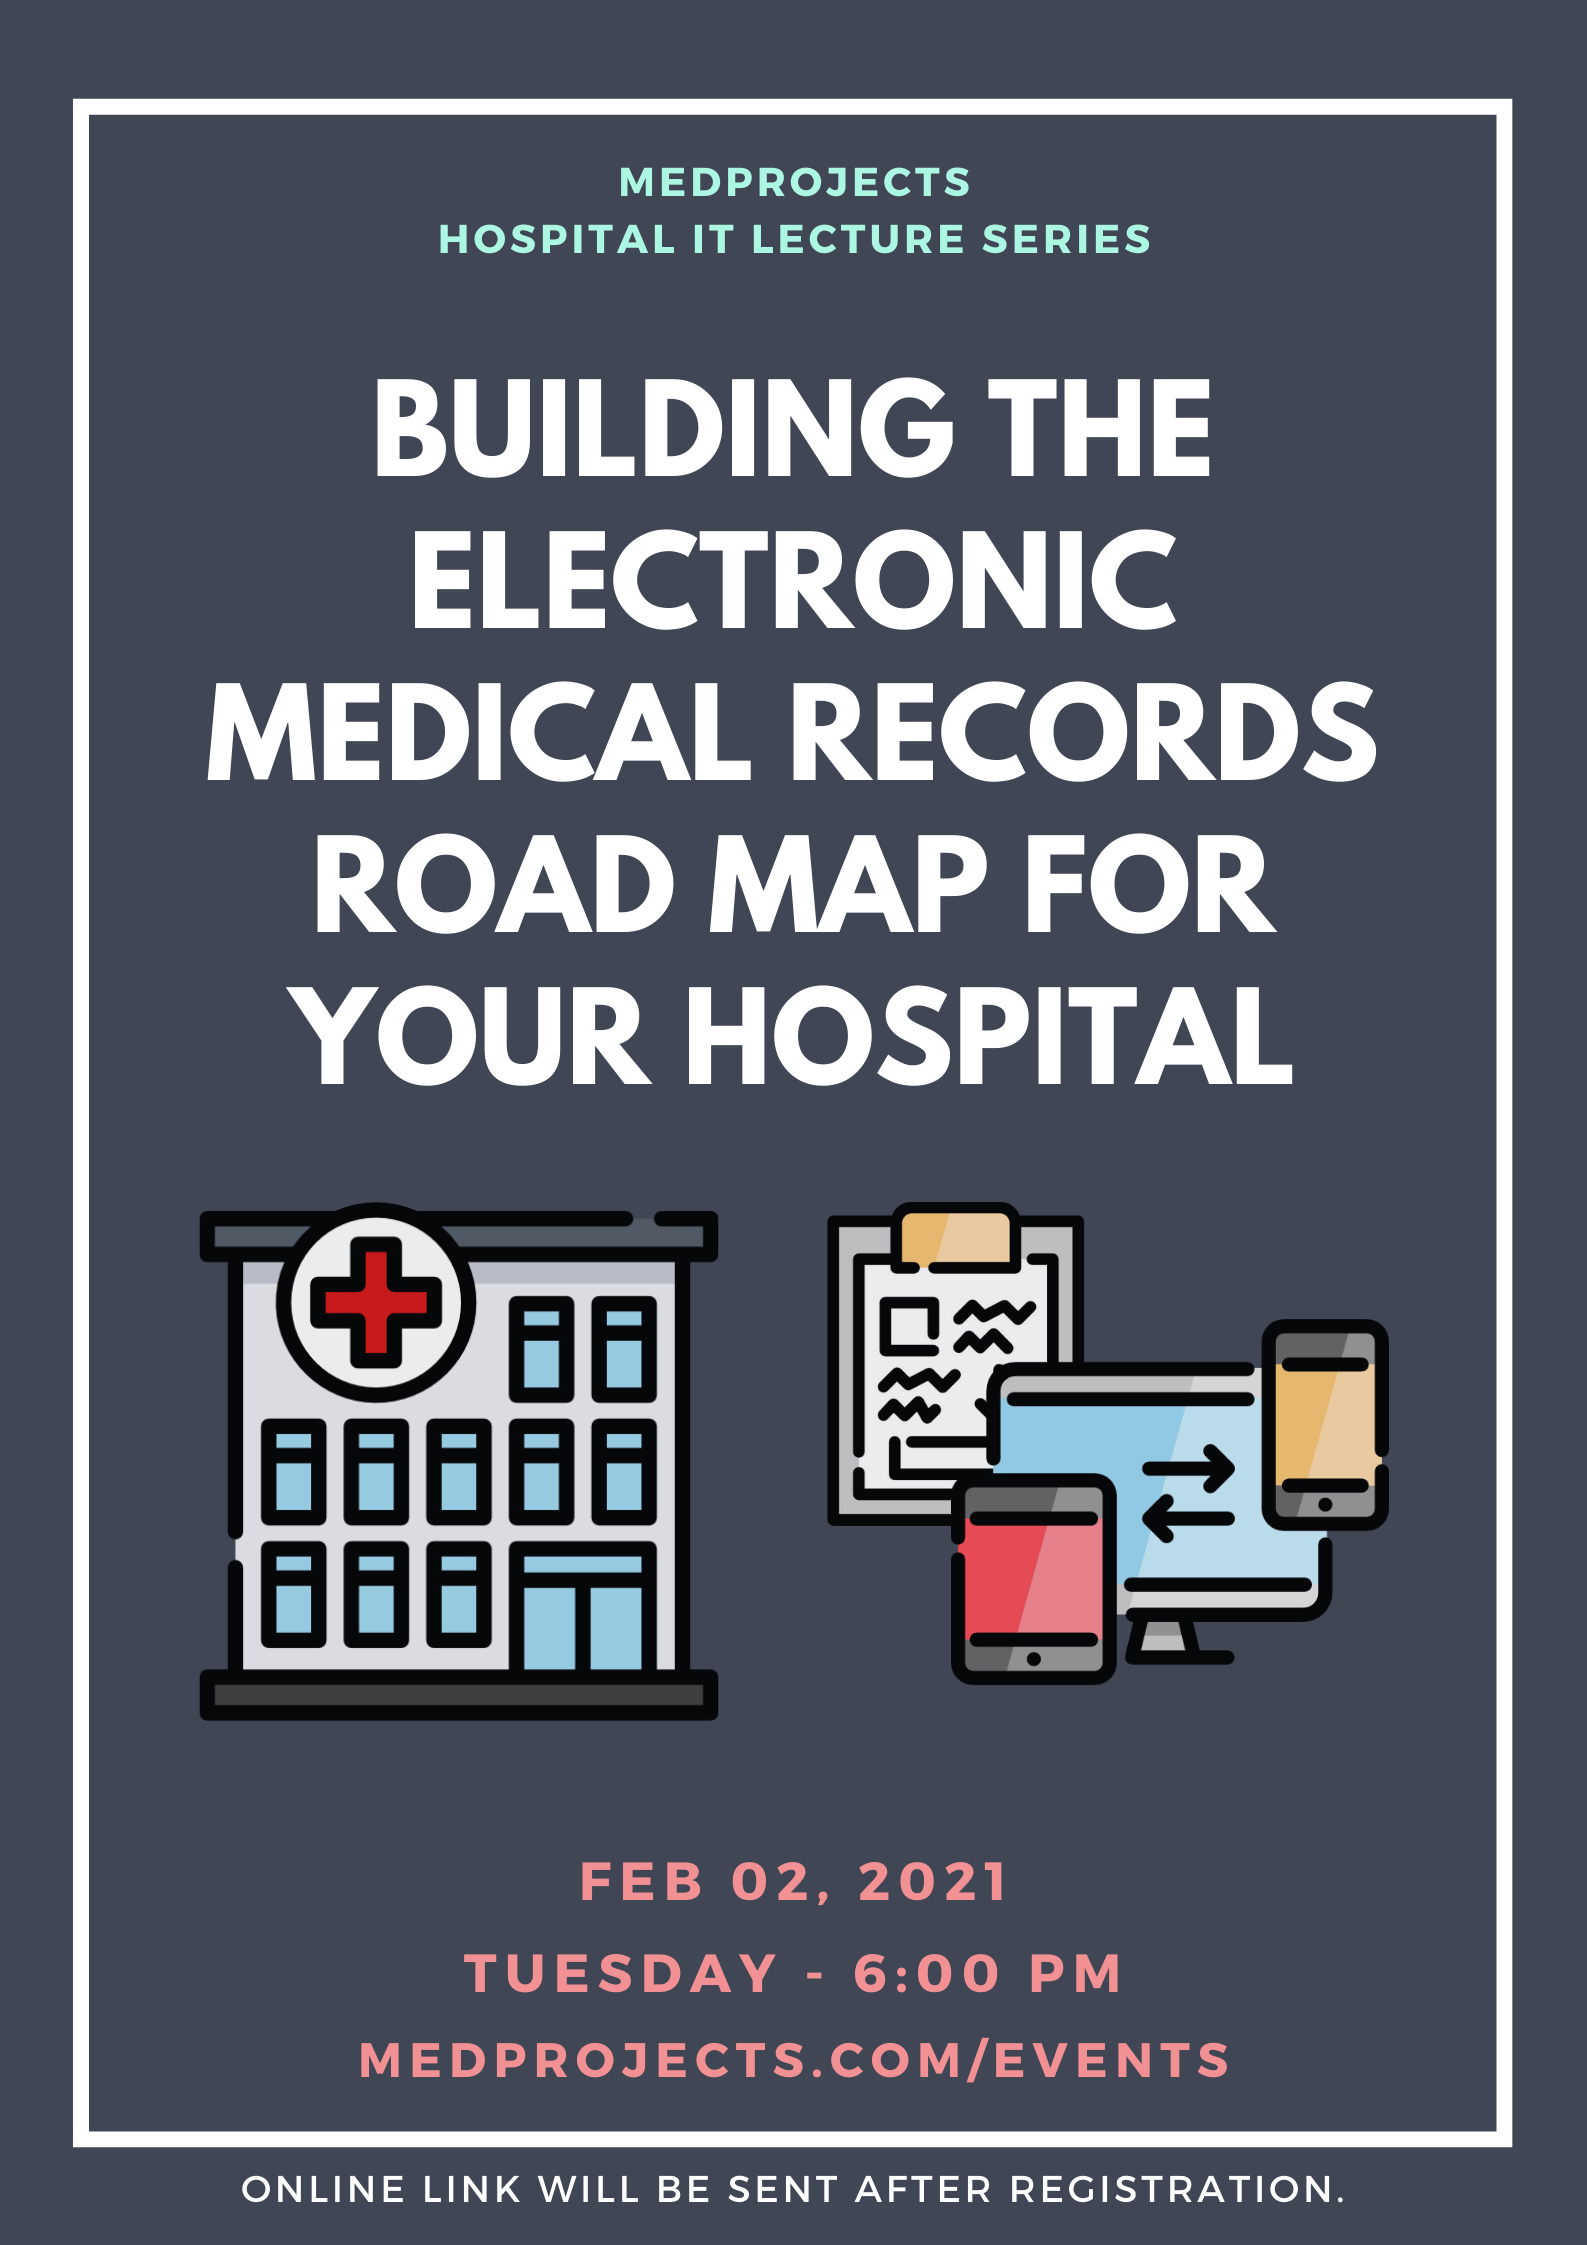 Building the Electronic Medical Records (EMR) Road Map for your Hospital